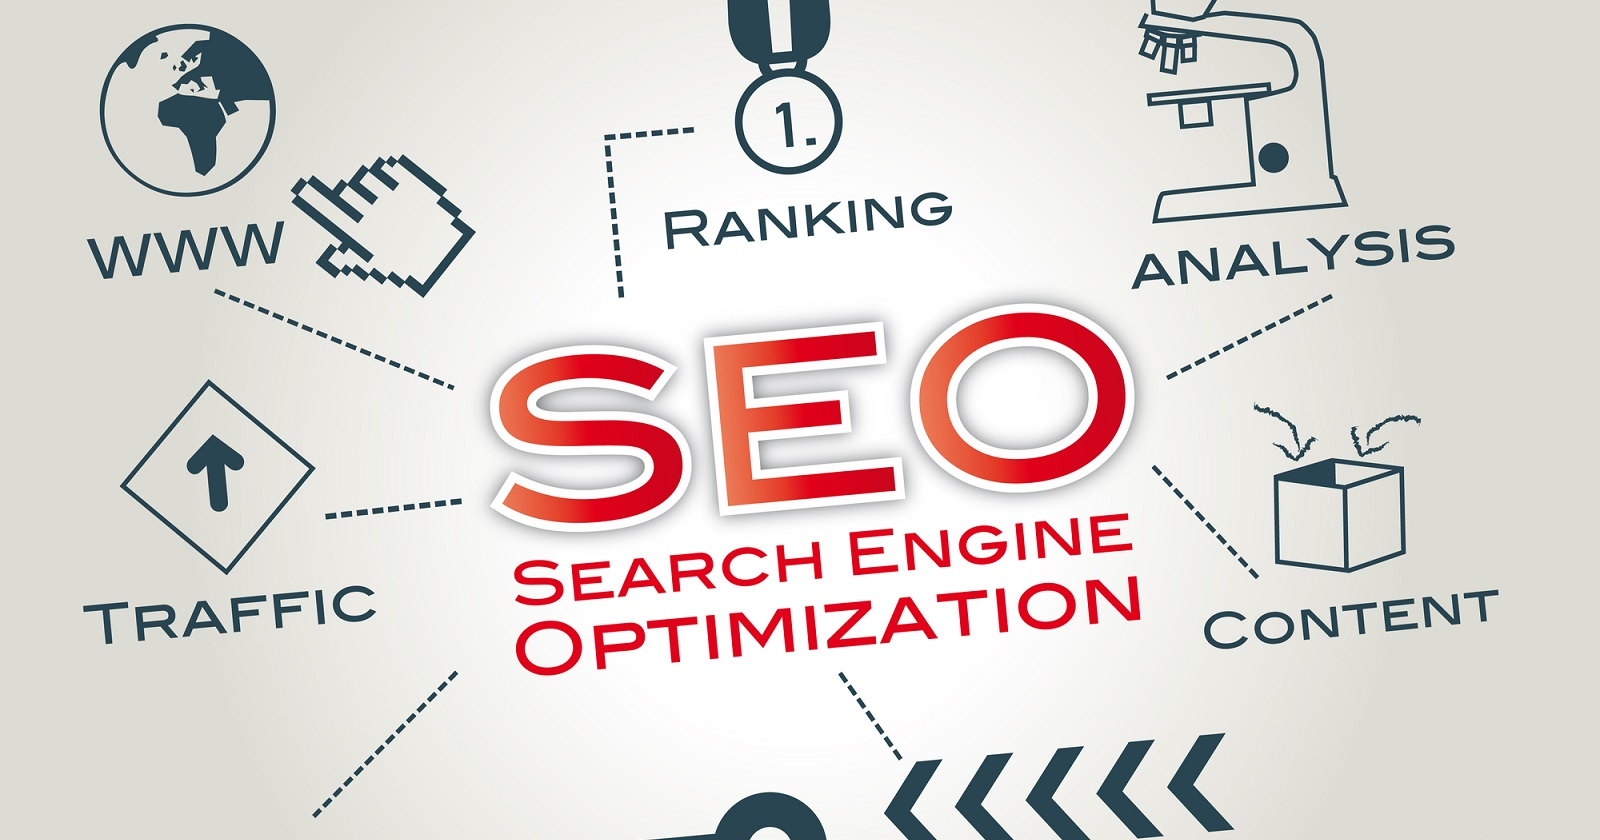 i will rank your website article and product on google and i will give you links list you can check